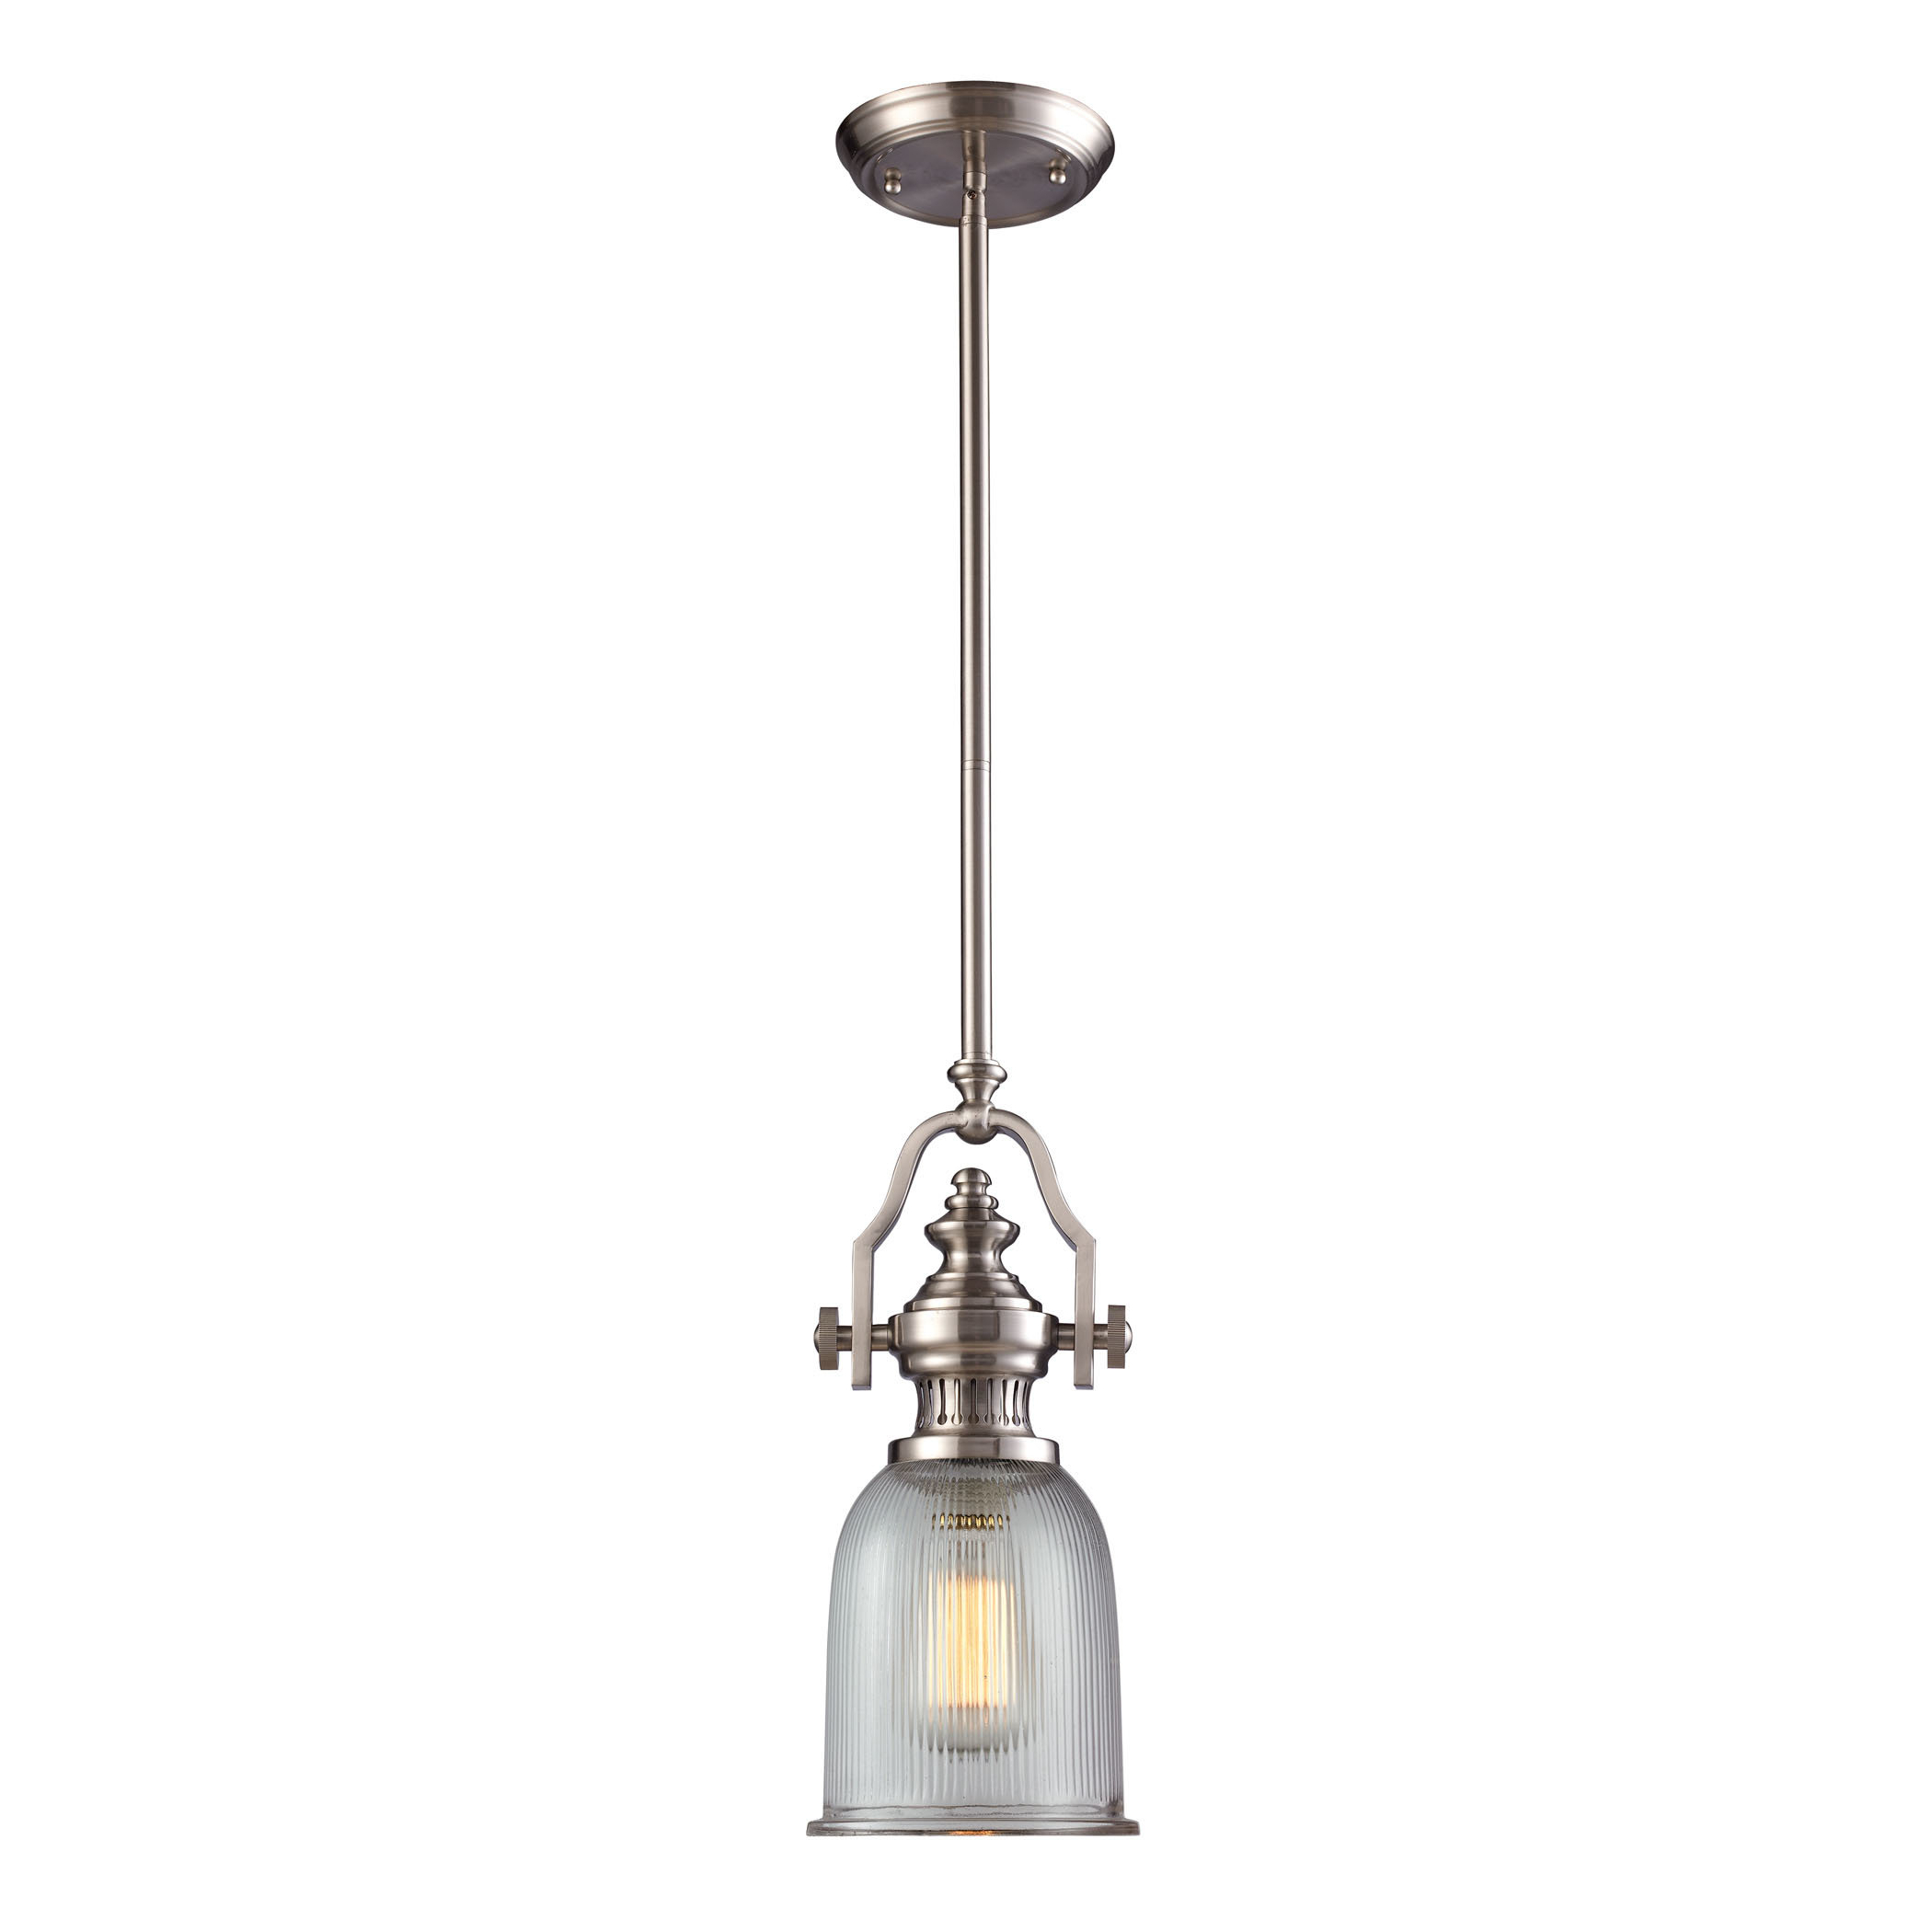 Birch Lane™ Heritage Erico 1 Light Single Bell Pendant In Newest Spokane 1 Light Single Urn Pendants (View 6 of 20)